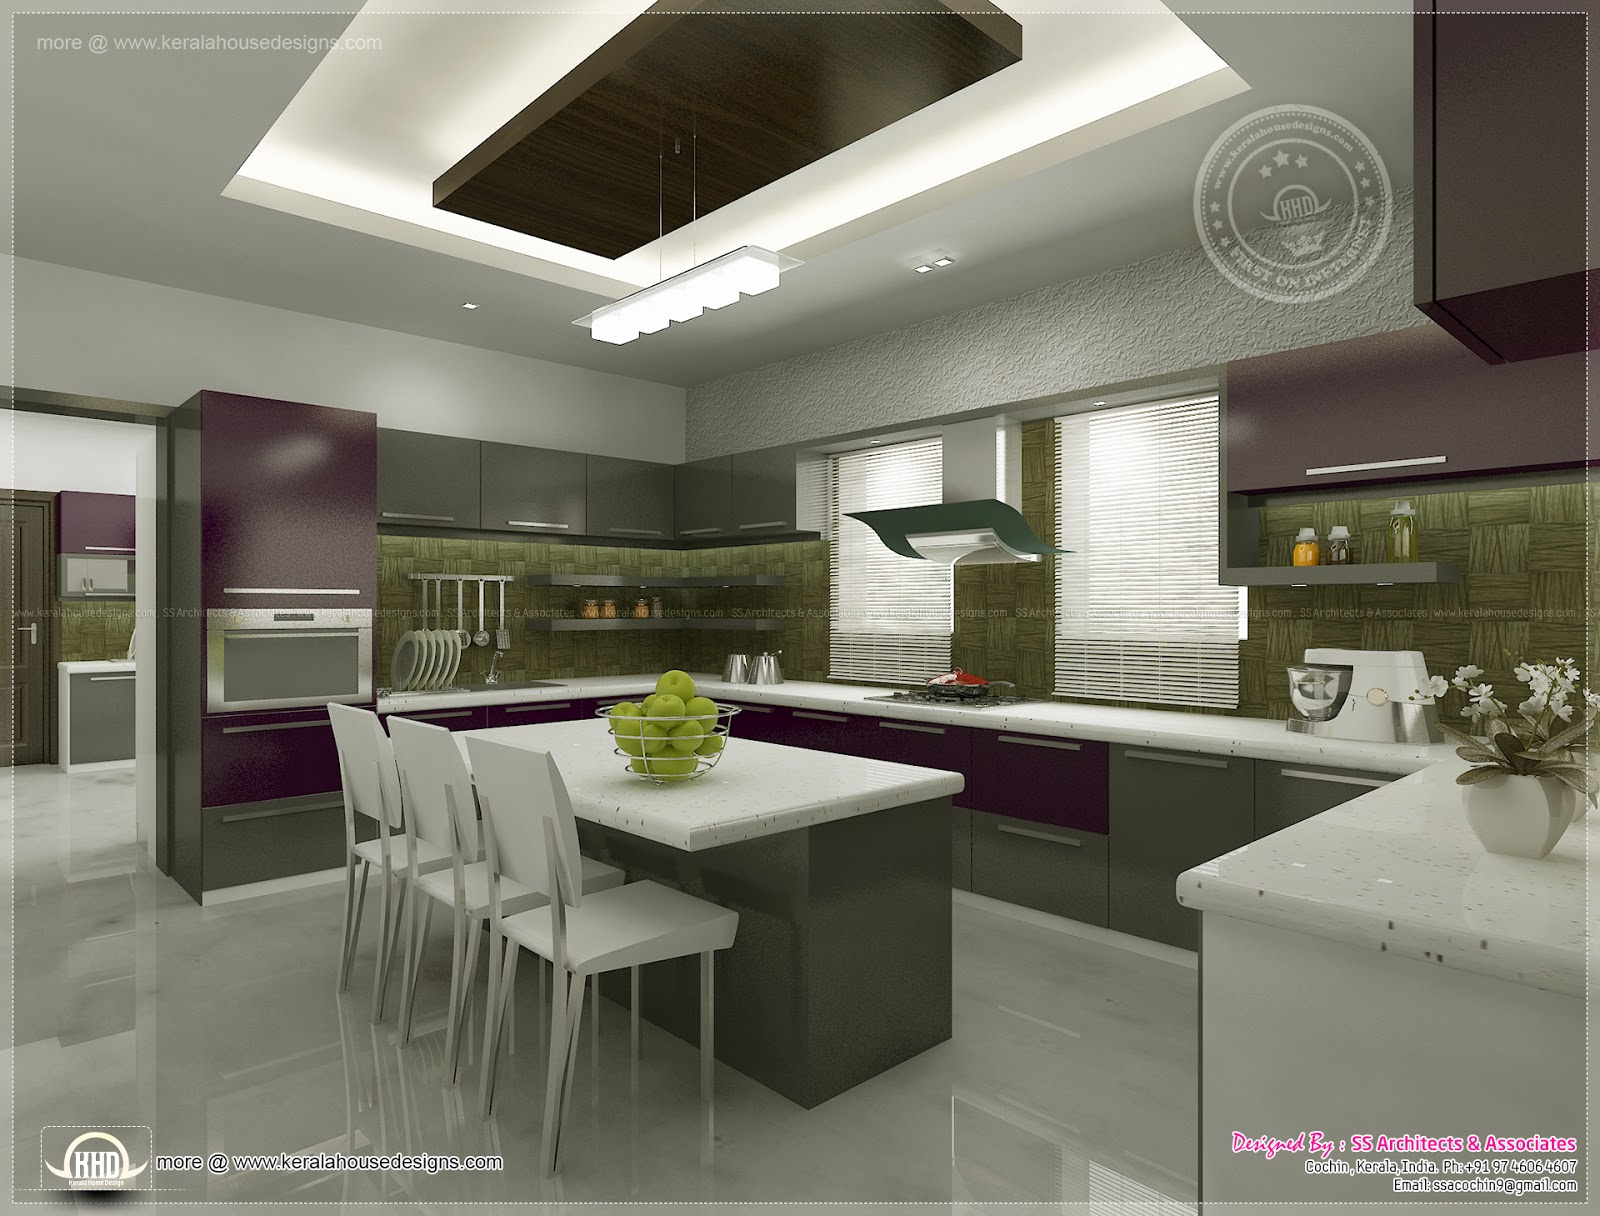 Kitchen interior views by SS Architects, Cochin - Kerala ...